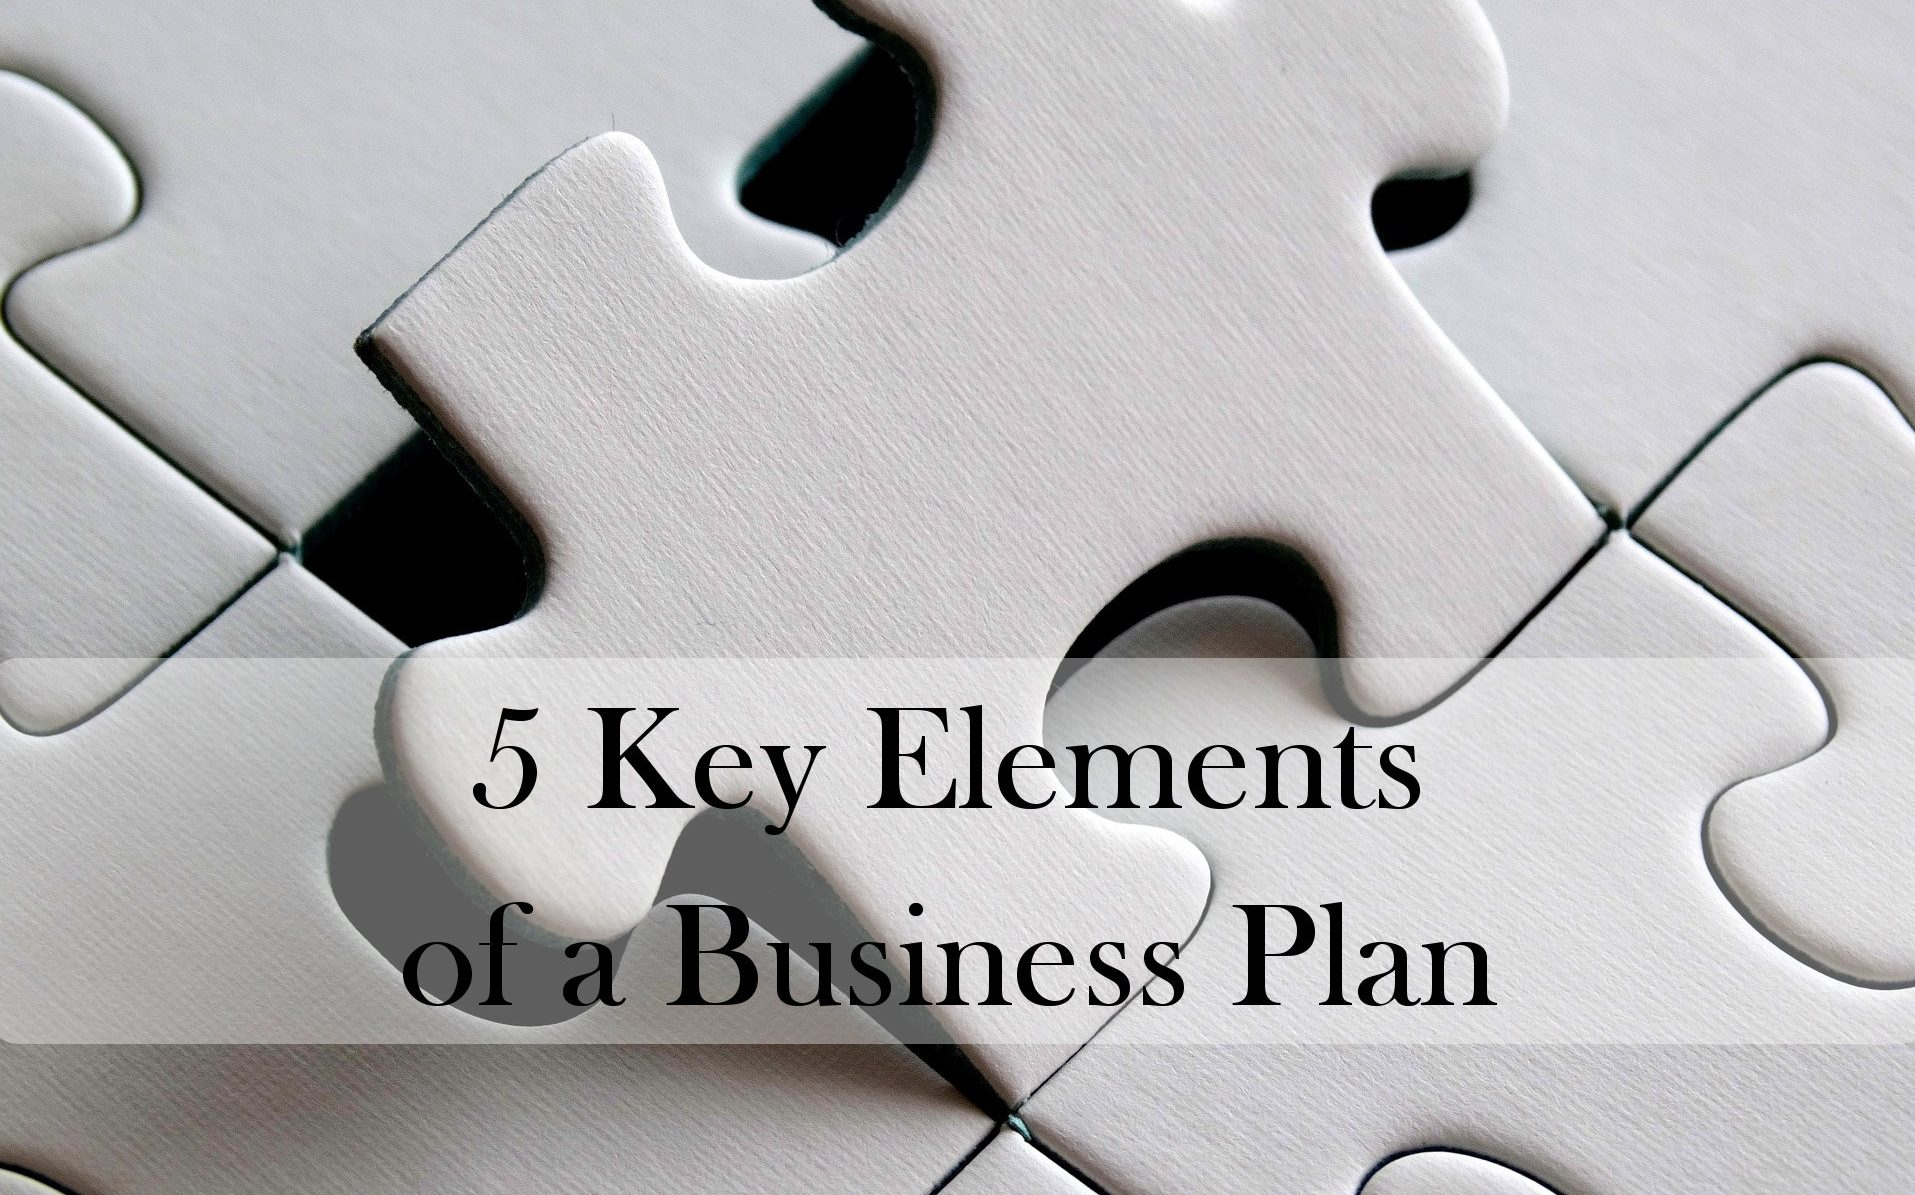 How to create a business plan for a restaurant